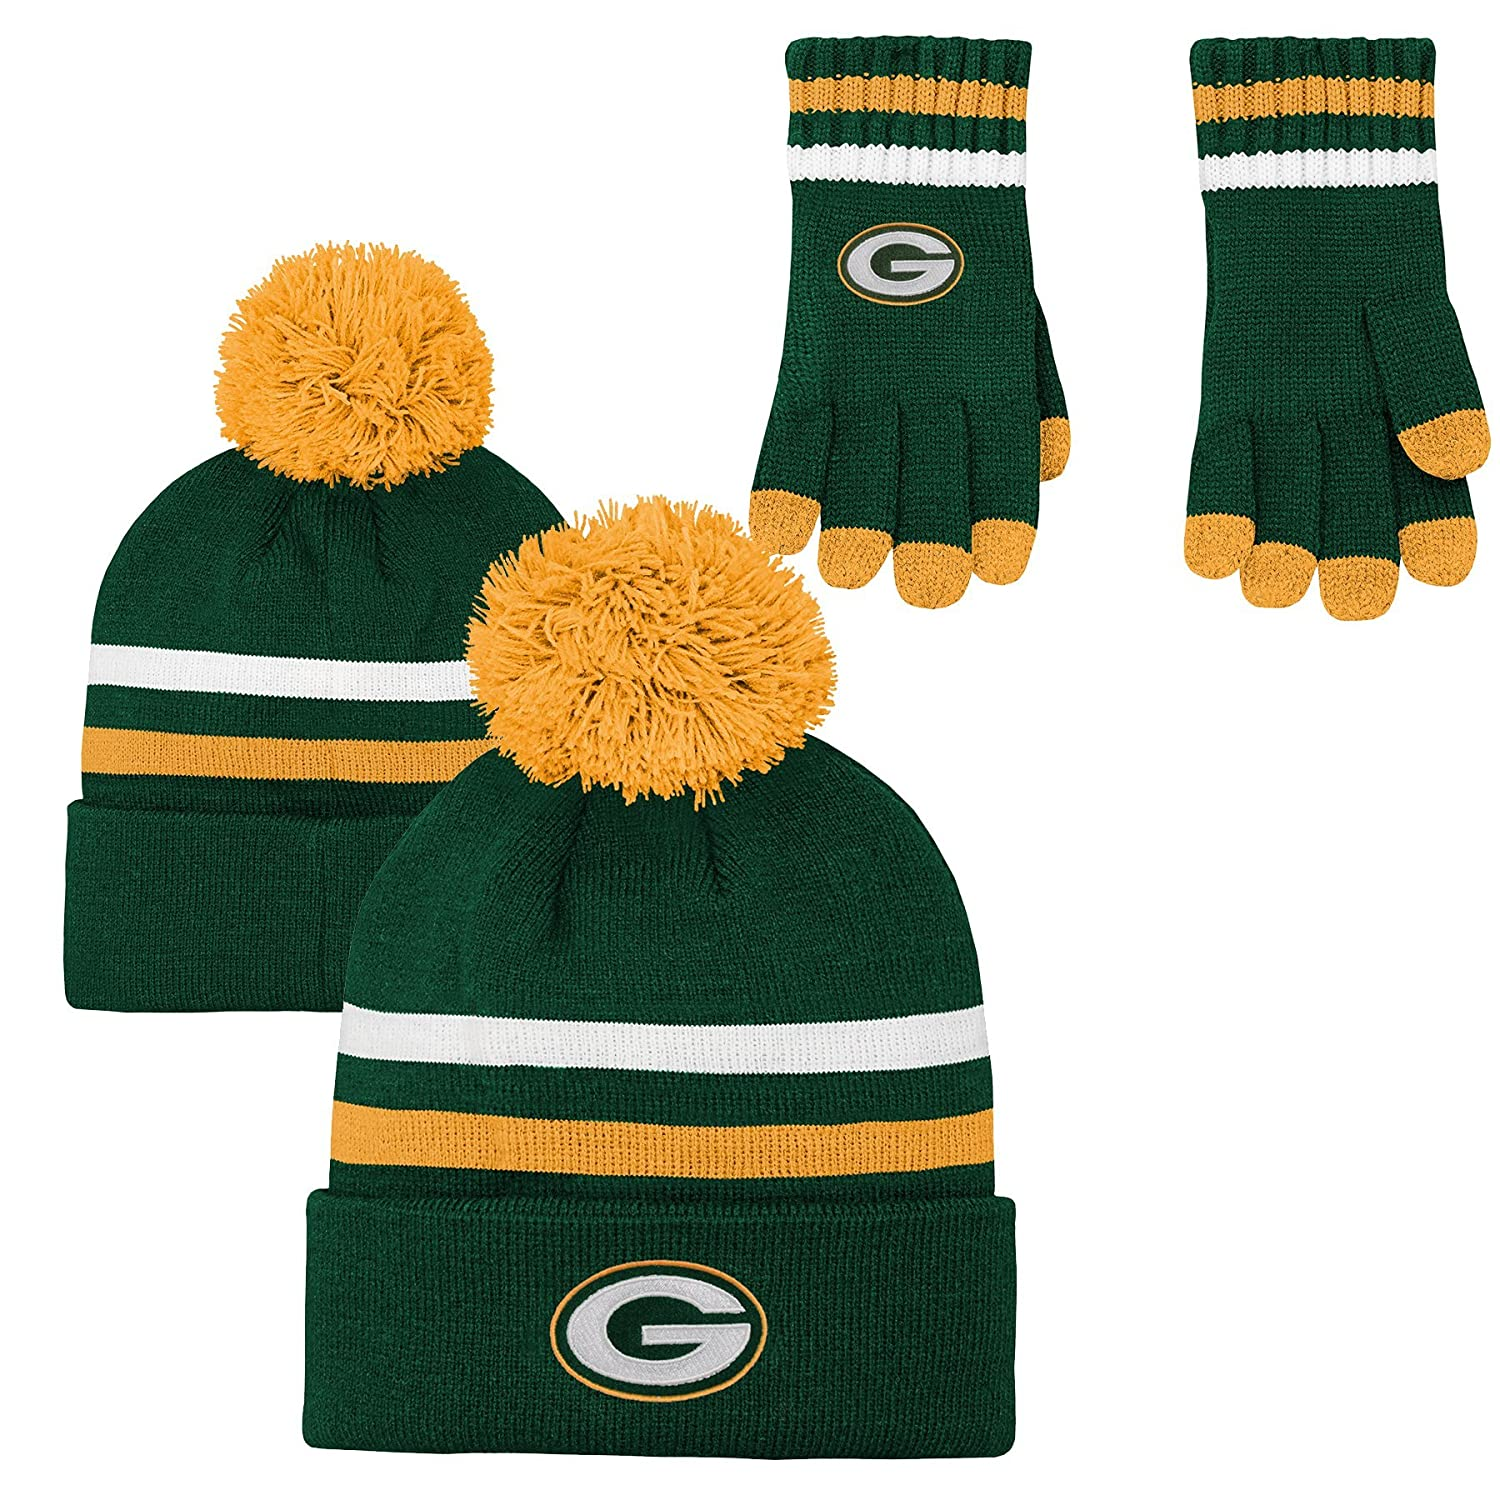 9c488c99004 Amazon.com   Outerstuff NFL Kids   Youth Boys 2 Piece Knit Hat and Gloves  Set   Clothing